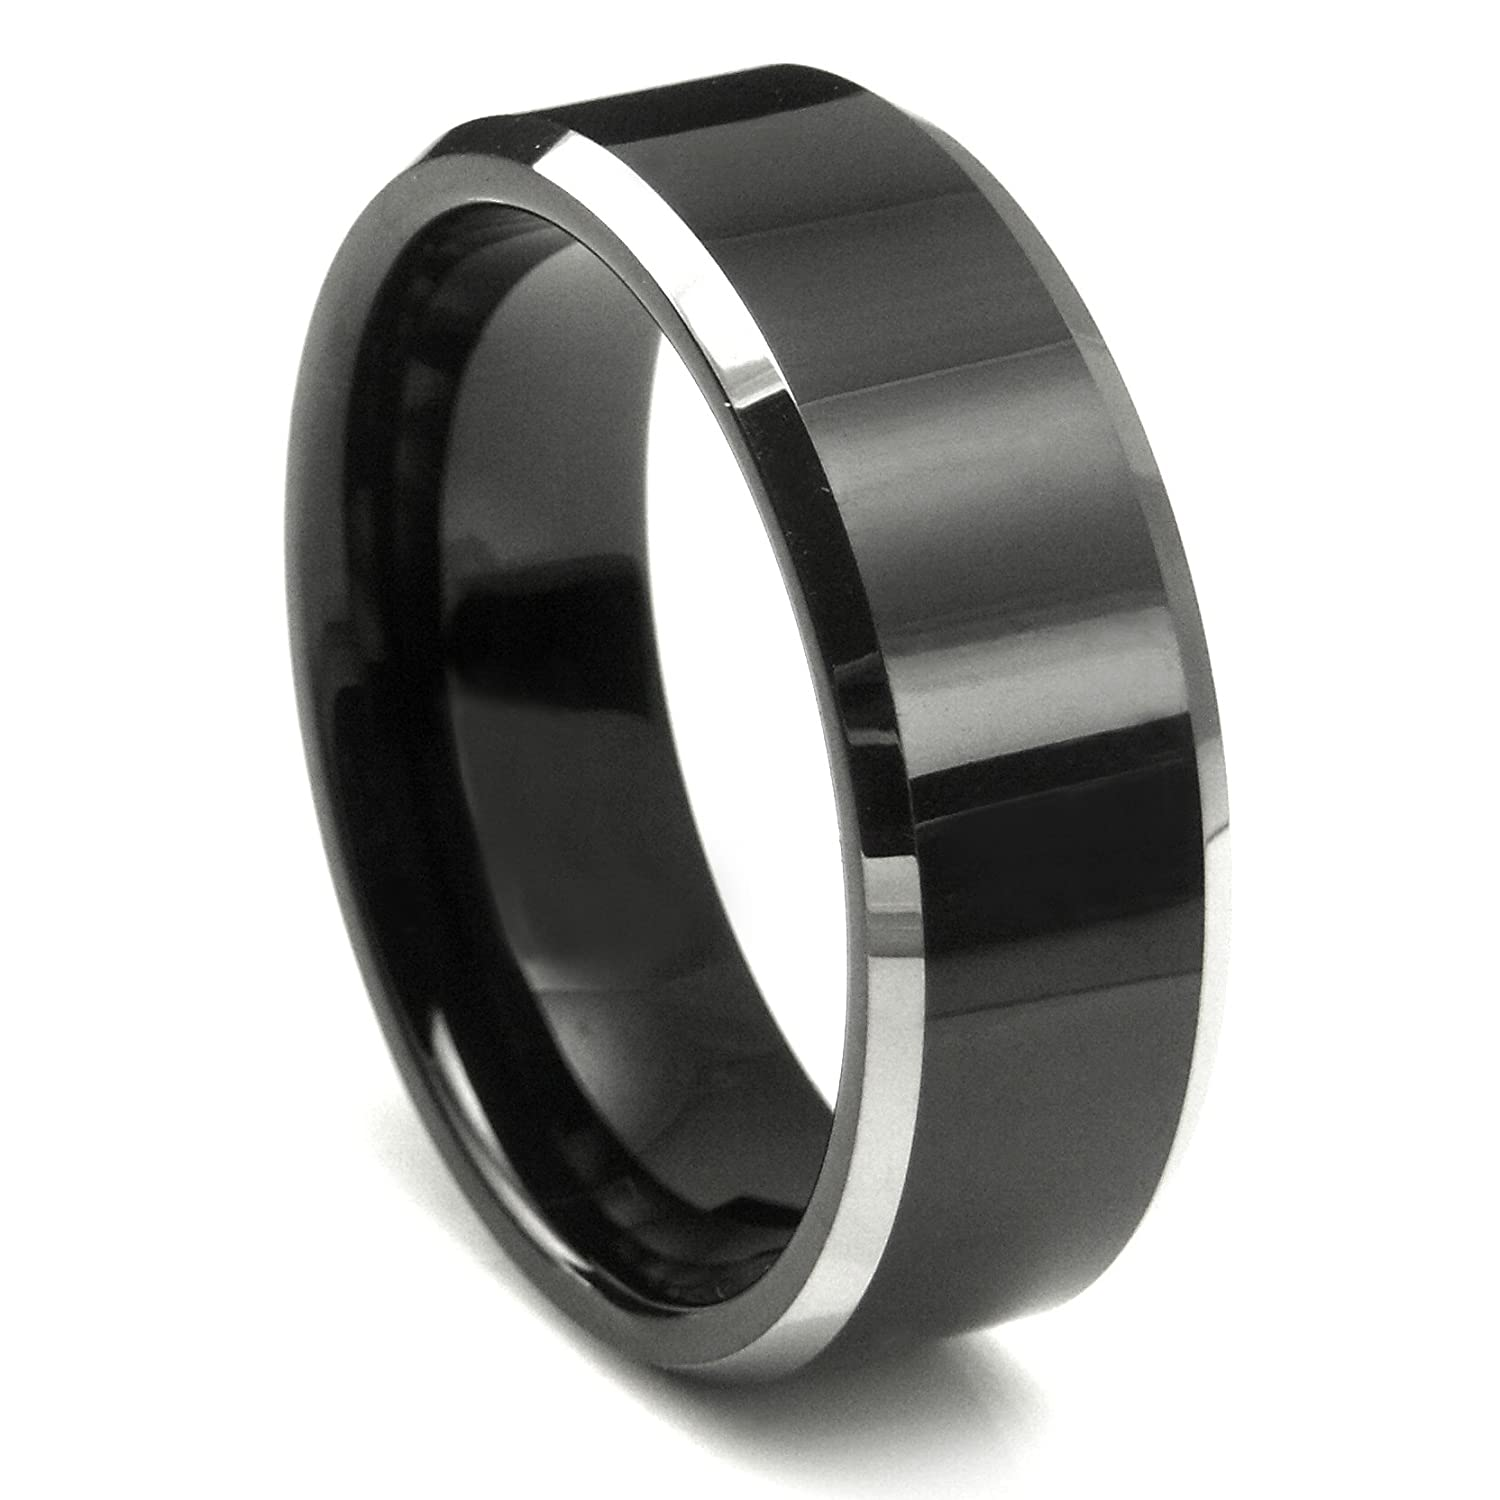 orders shipping watches wedding carbon mens free dragon over zirconia design rings s jewelry cubic fiber and with comfort product titanium band oliveti overstock ring men black fit on